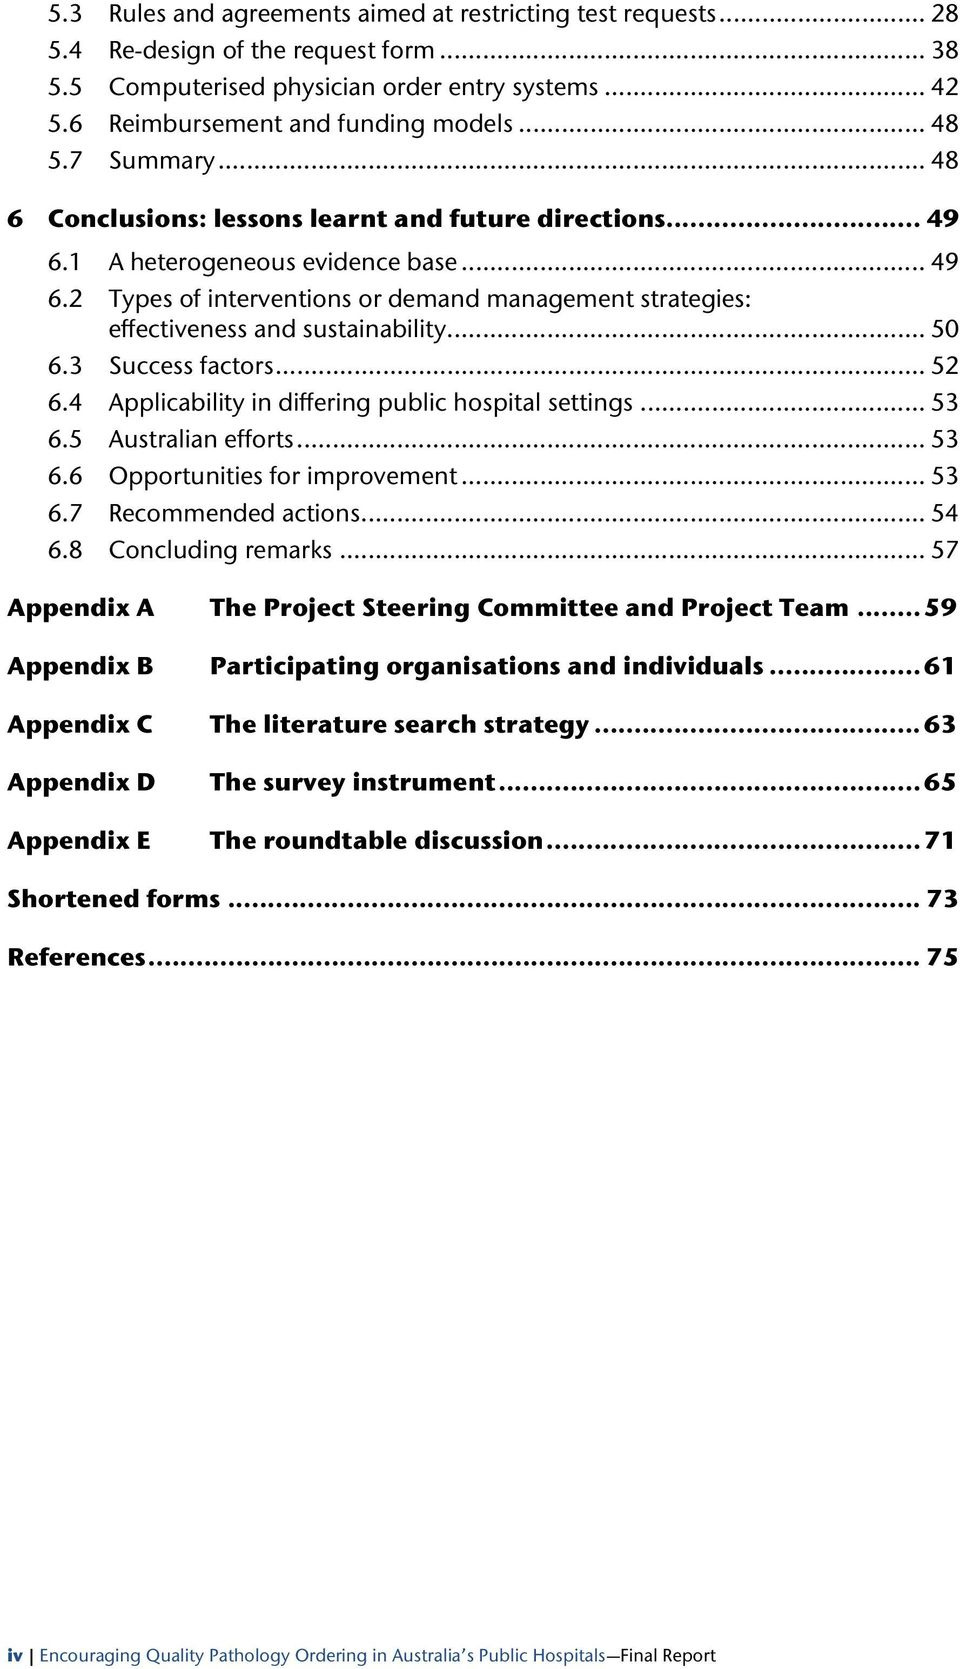 .. 50 6.3 Success factors... 52 6.4 Applicability in differing public hospital settings... 53 6.5 Australian efforts... 53 6.6 Opportunities for improvement... 53 6.7 Recommended actions... 54 6.